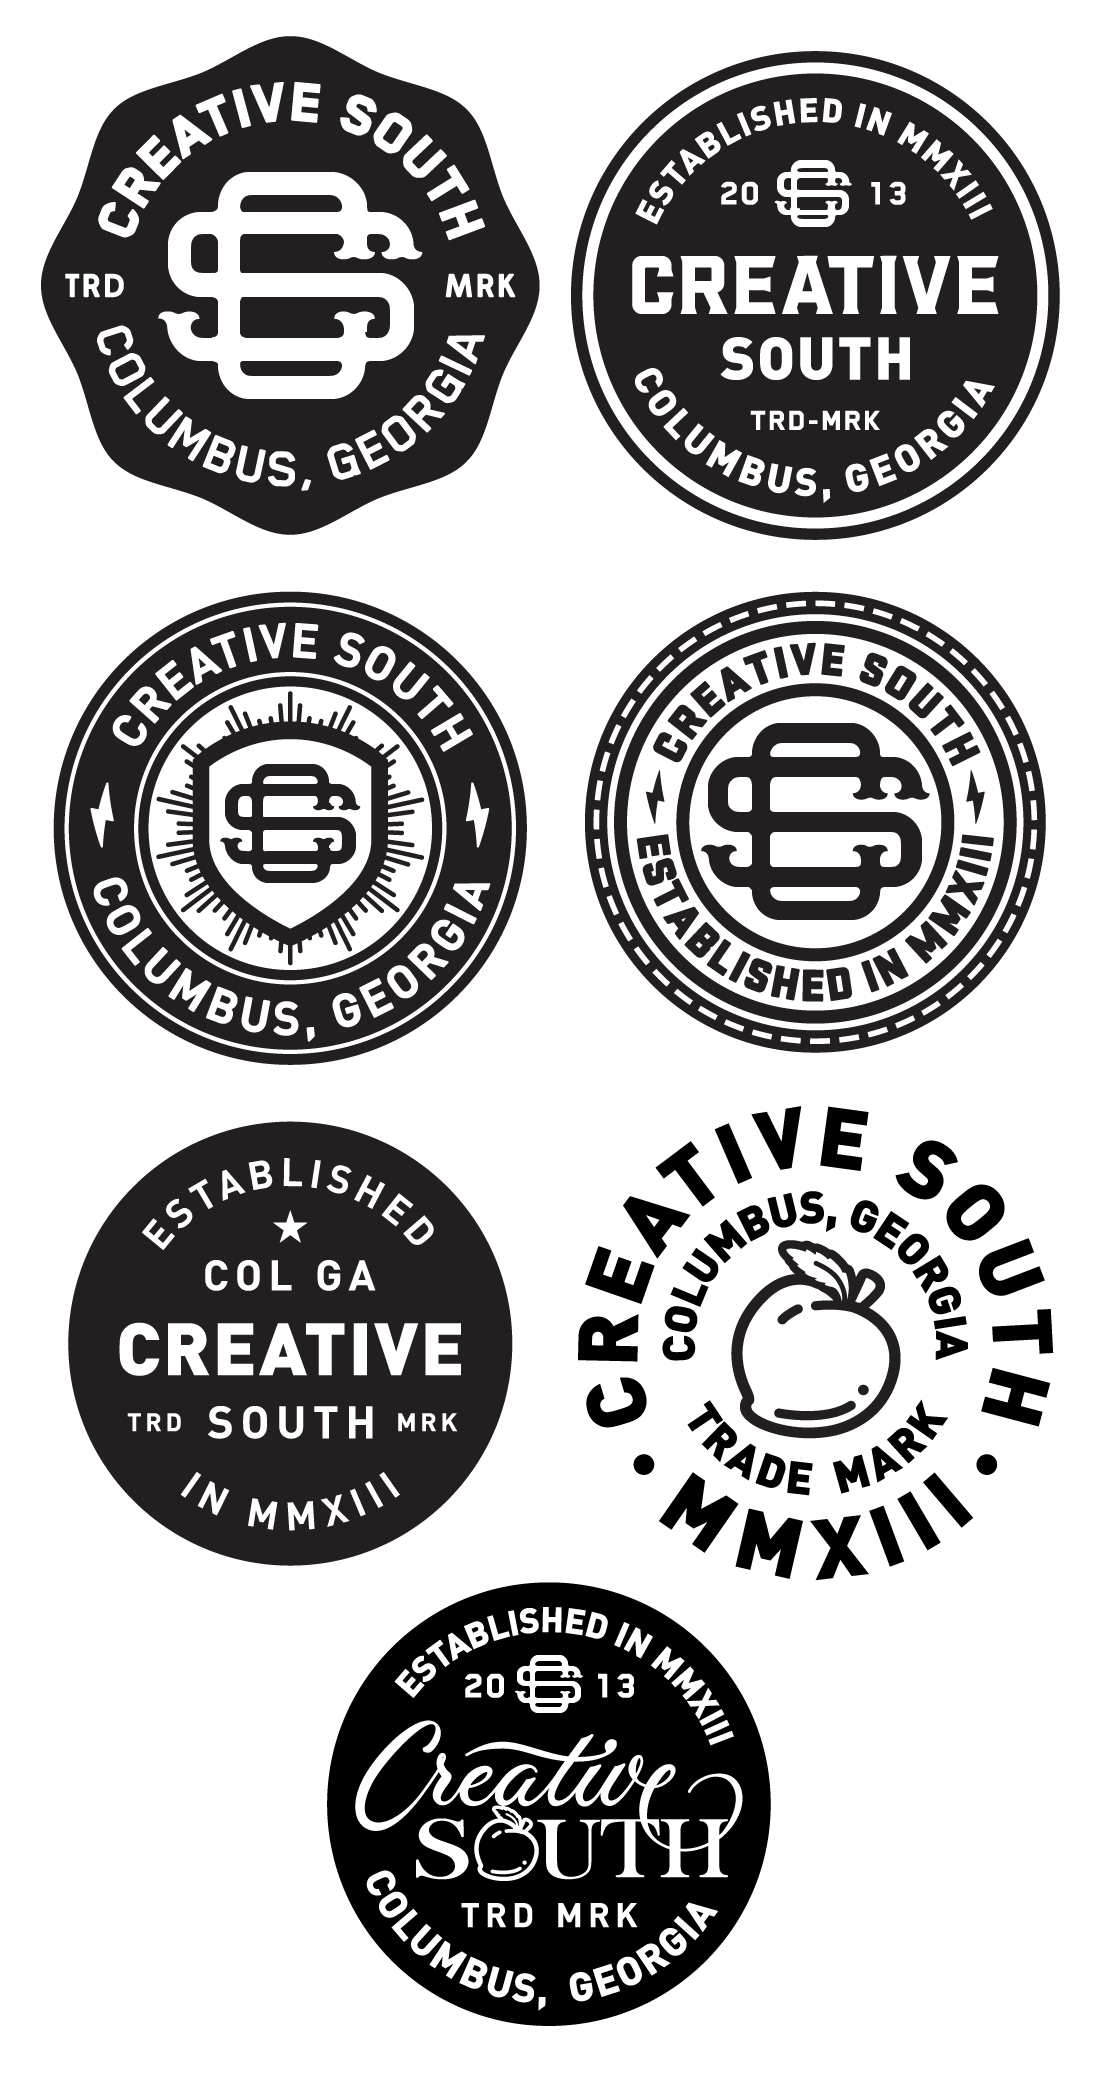 Creative-South-badge_finals.png by Nick Slater